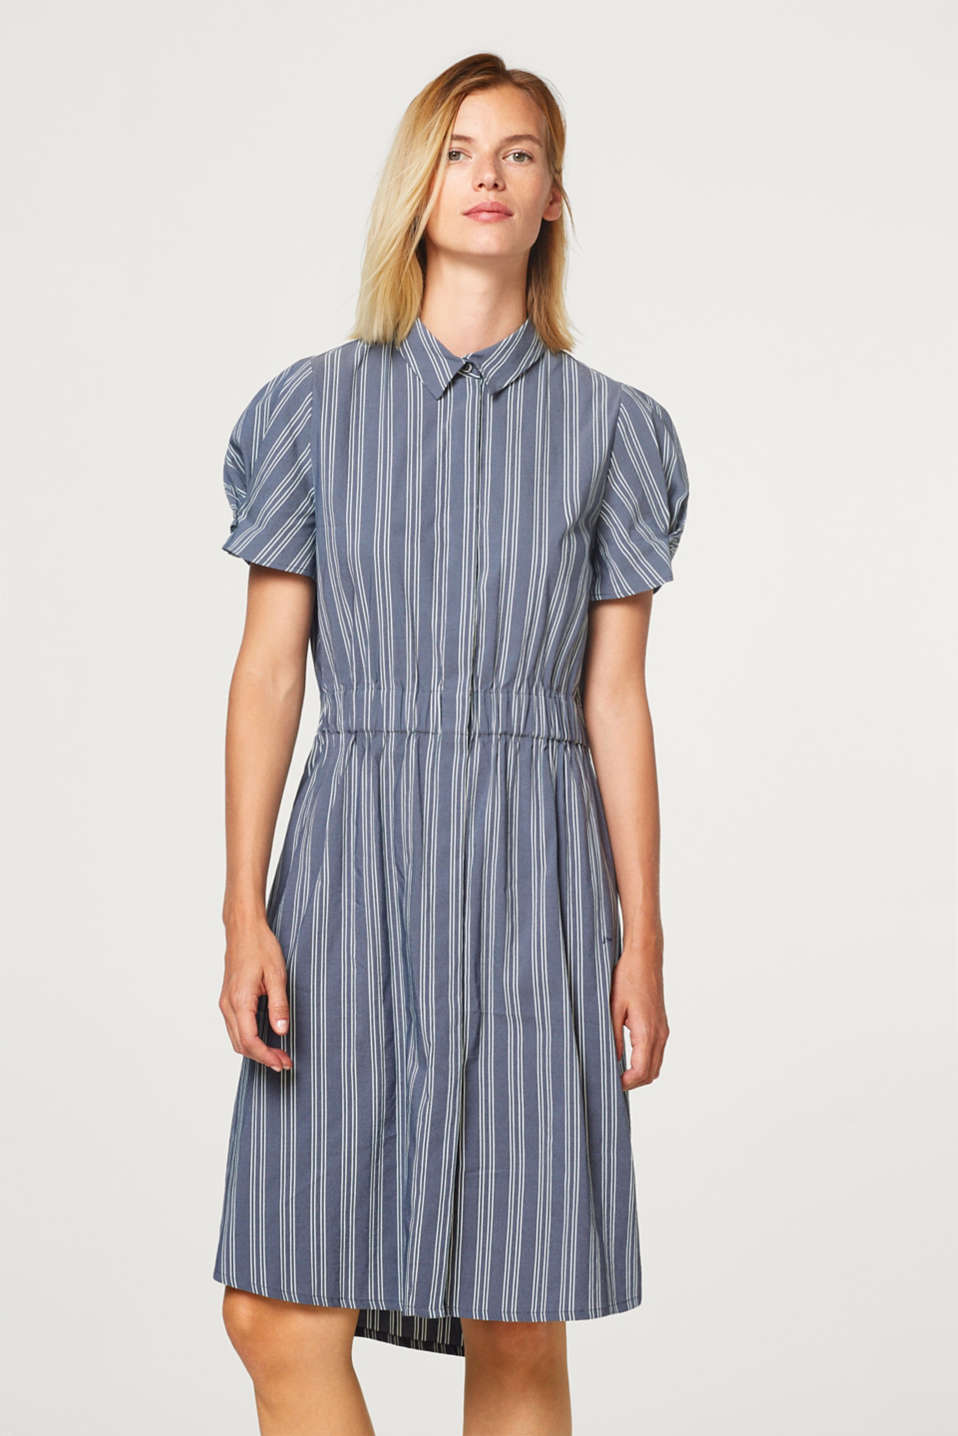 Striped shirt dress made of blended cotton